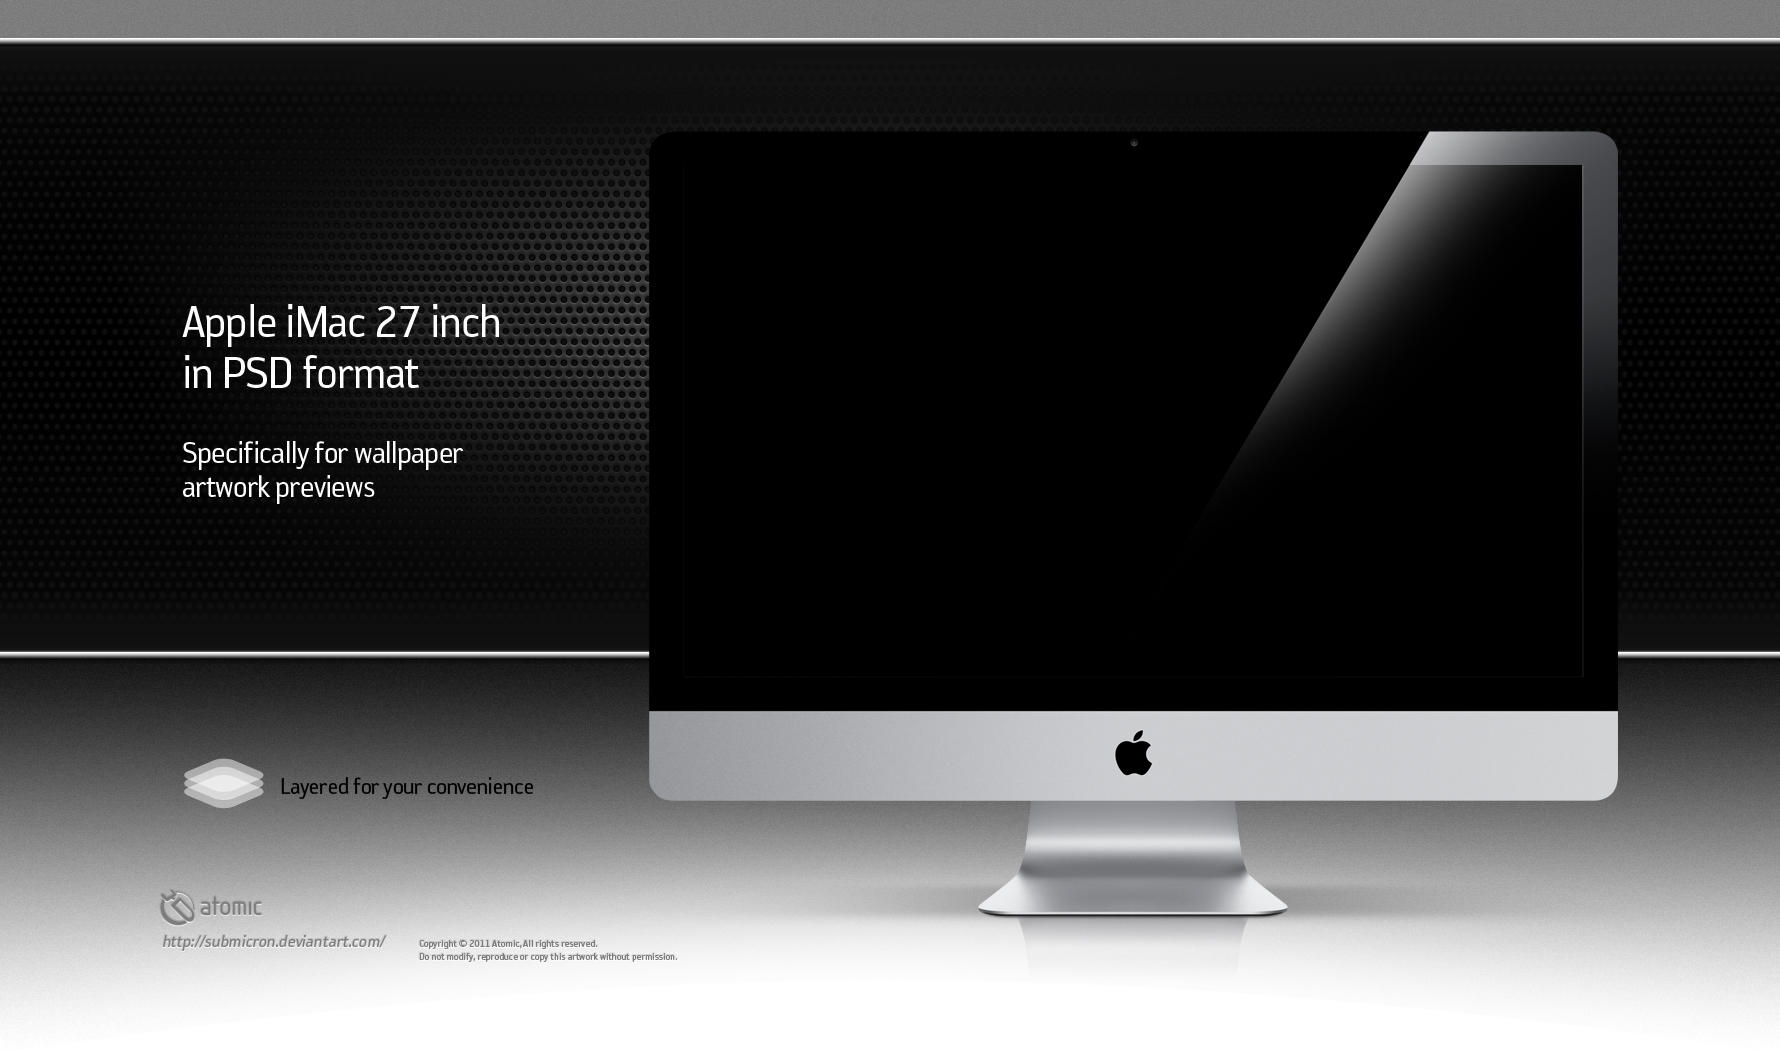 Apple iMac 27 inch PSD by submicron